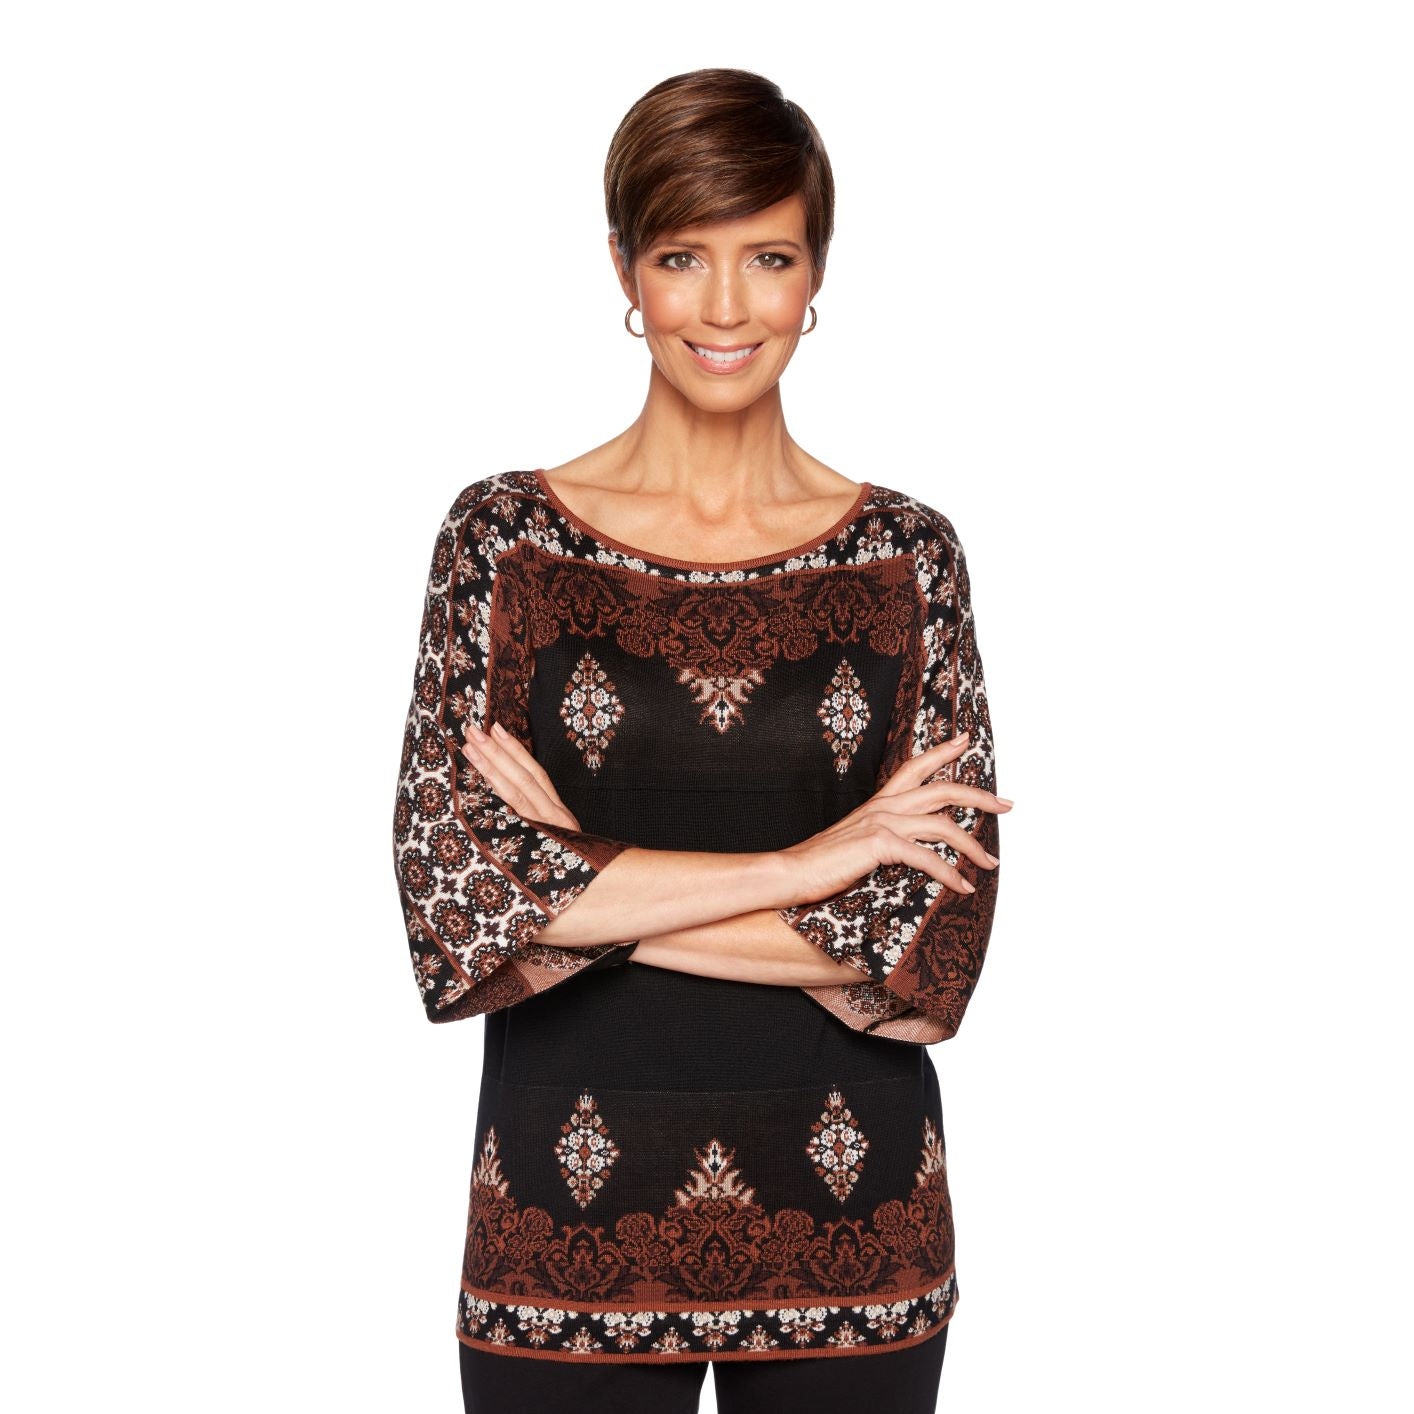 'Ruby Road' 37161 D7 969 - Women'a Jacquard Pullover Sweater - Black / Multi